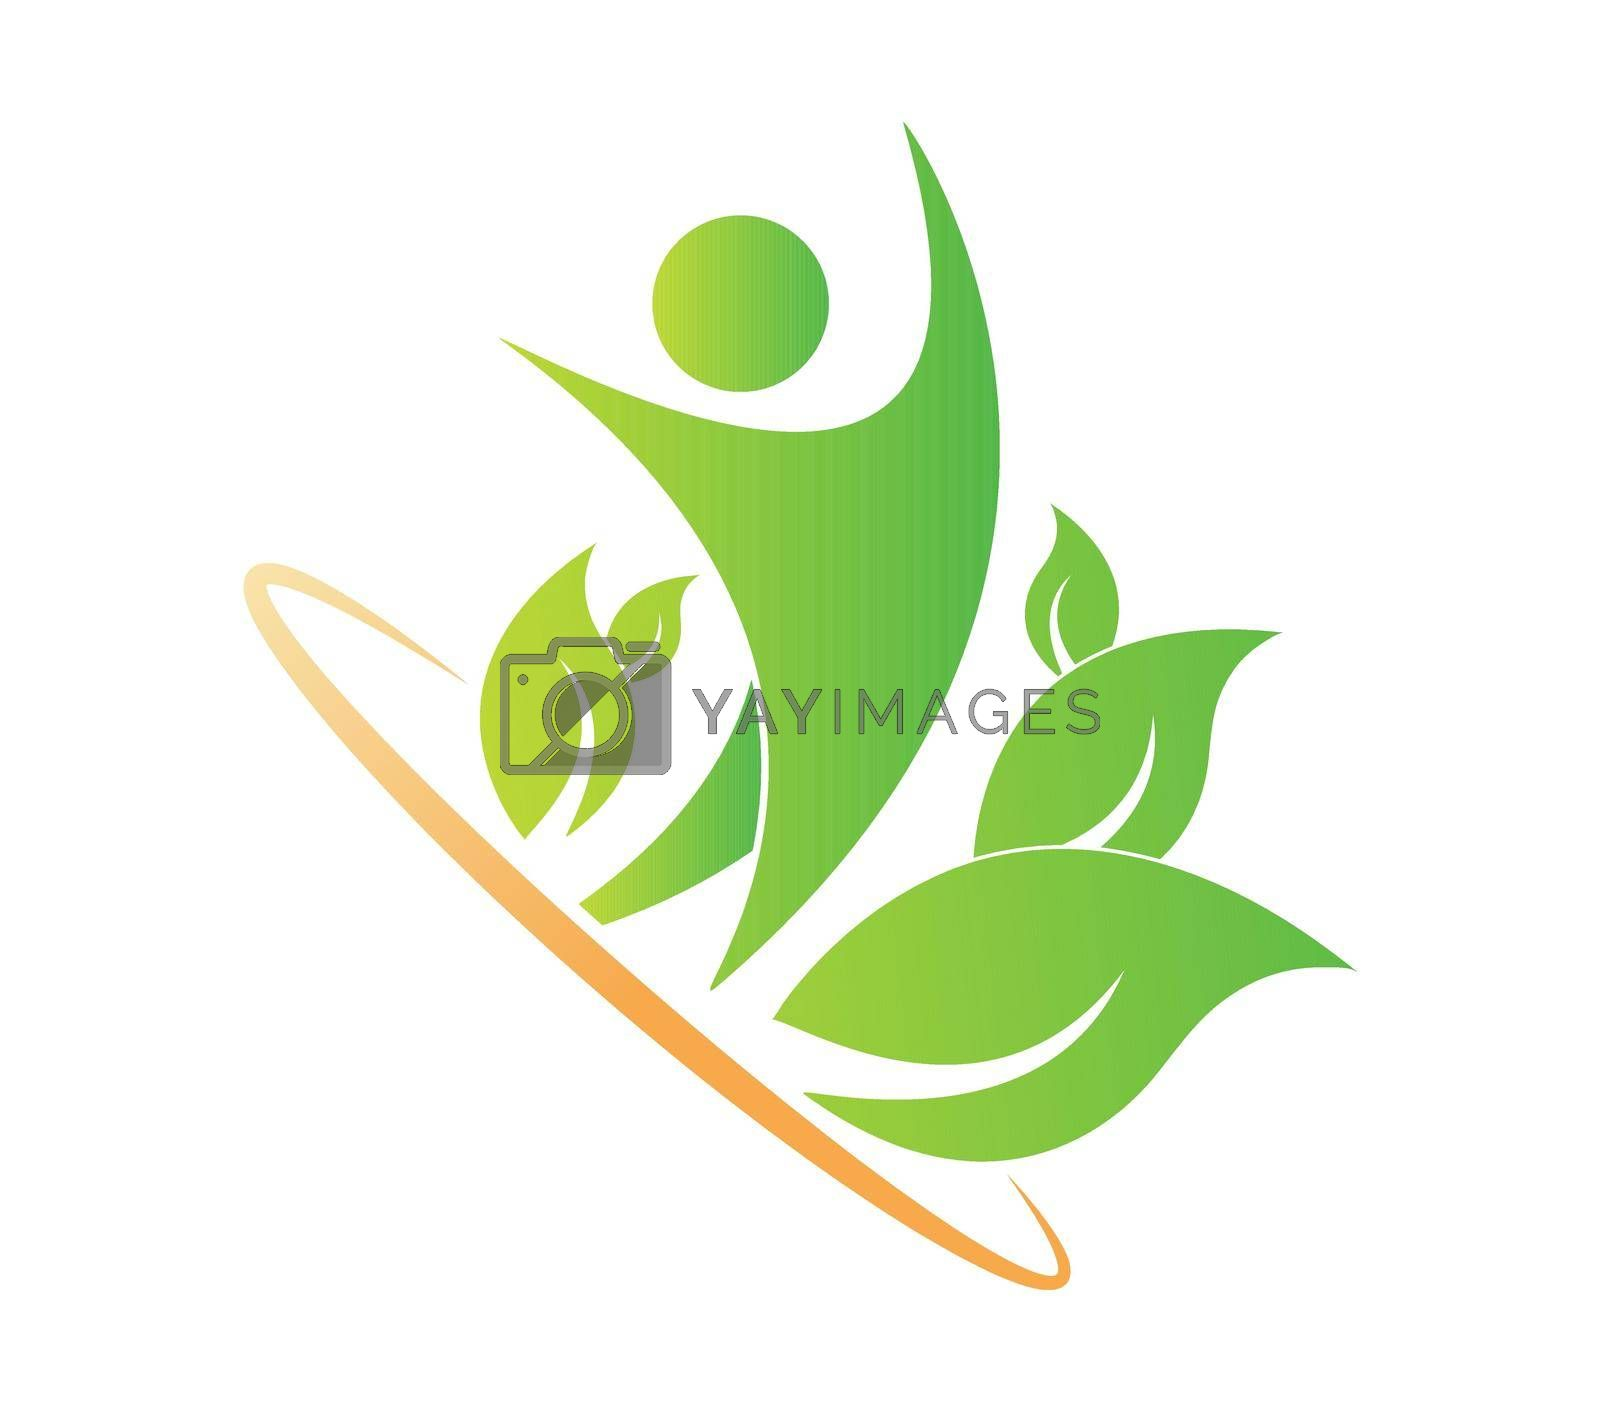 Royalty free image of Logo of a healthy lifestyle, unity with nature, ecology by Grommik